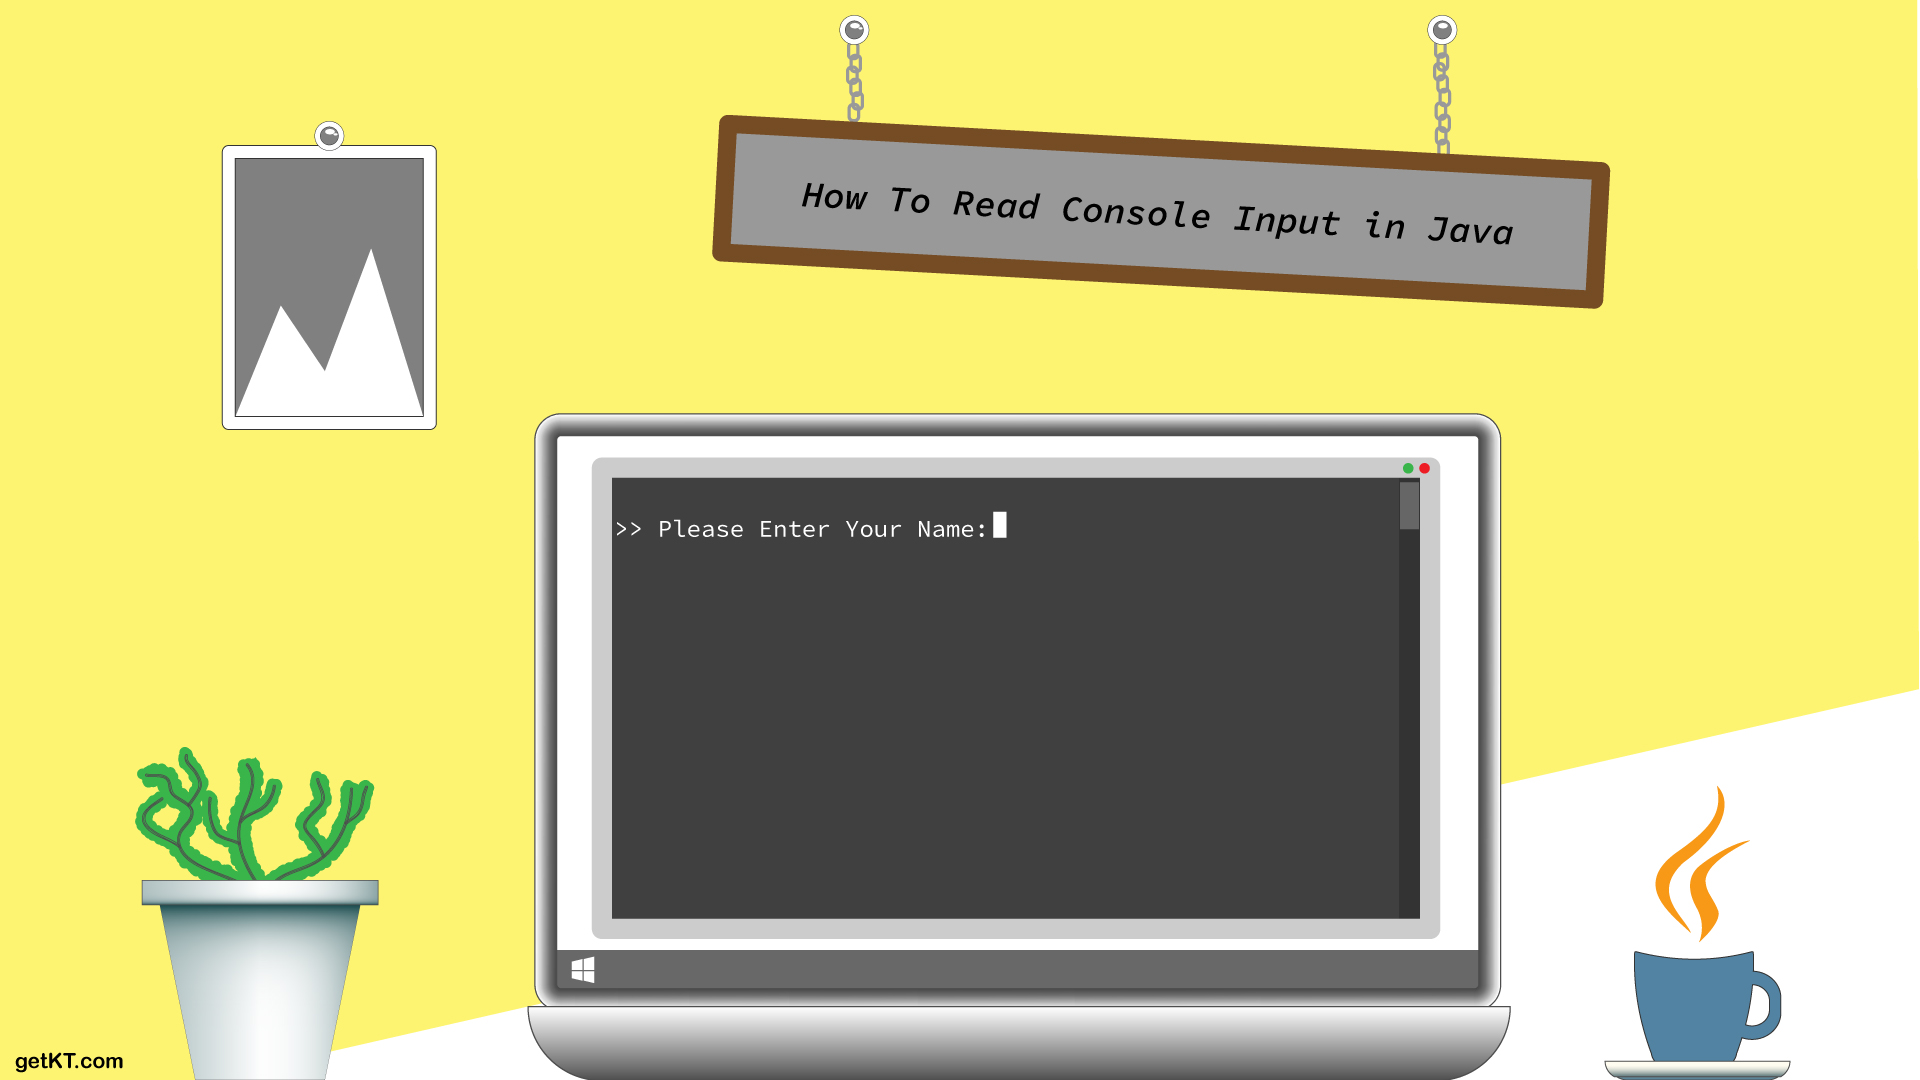 How to read Console Input in java